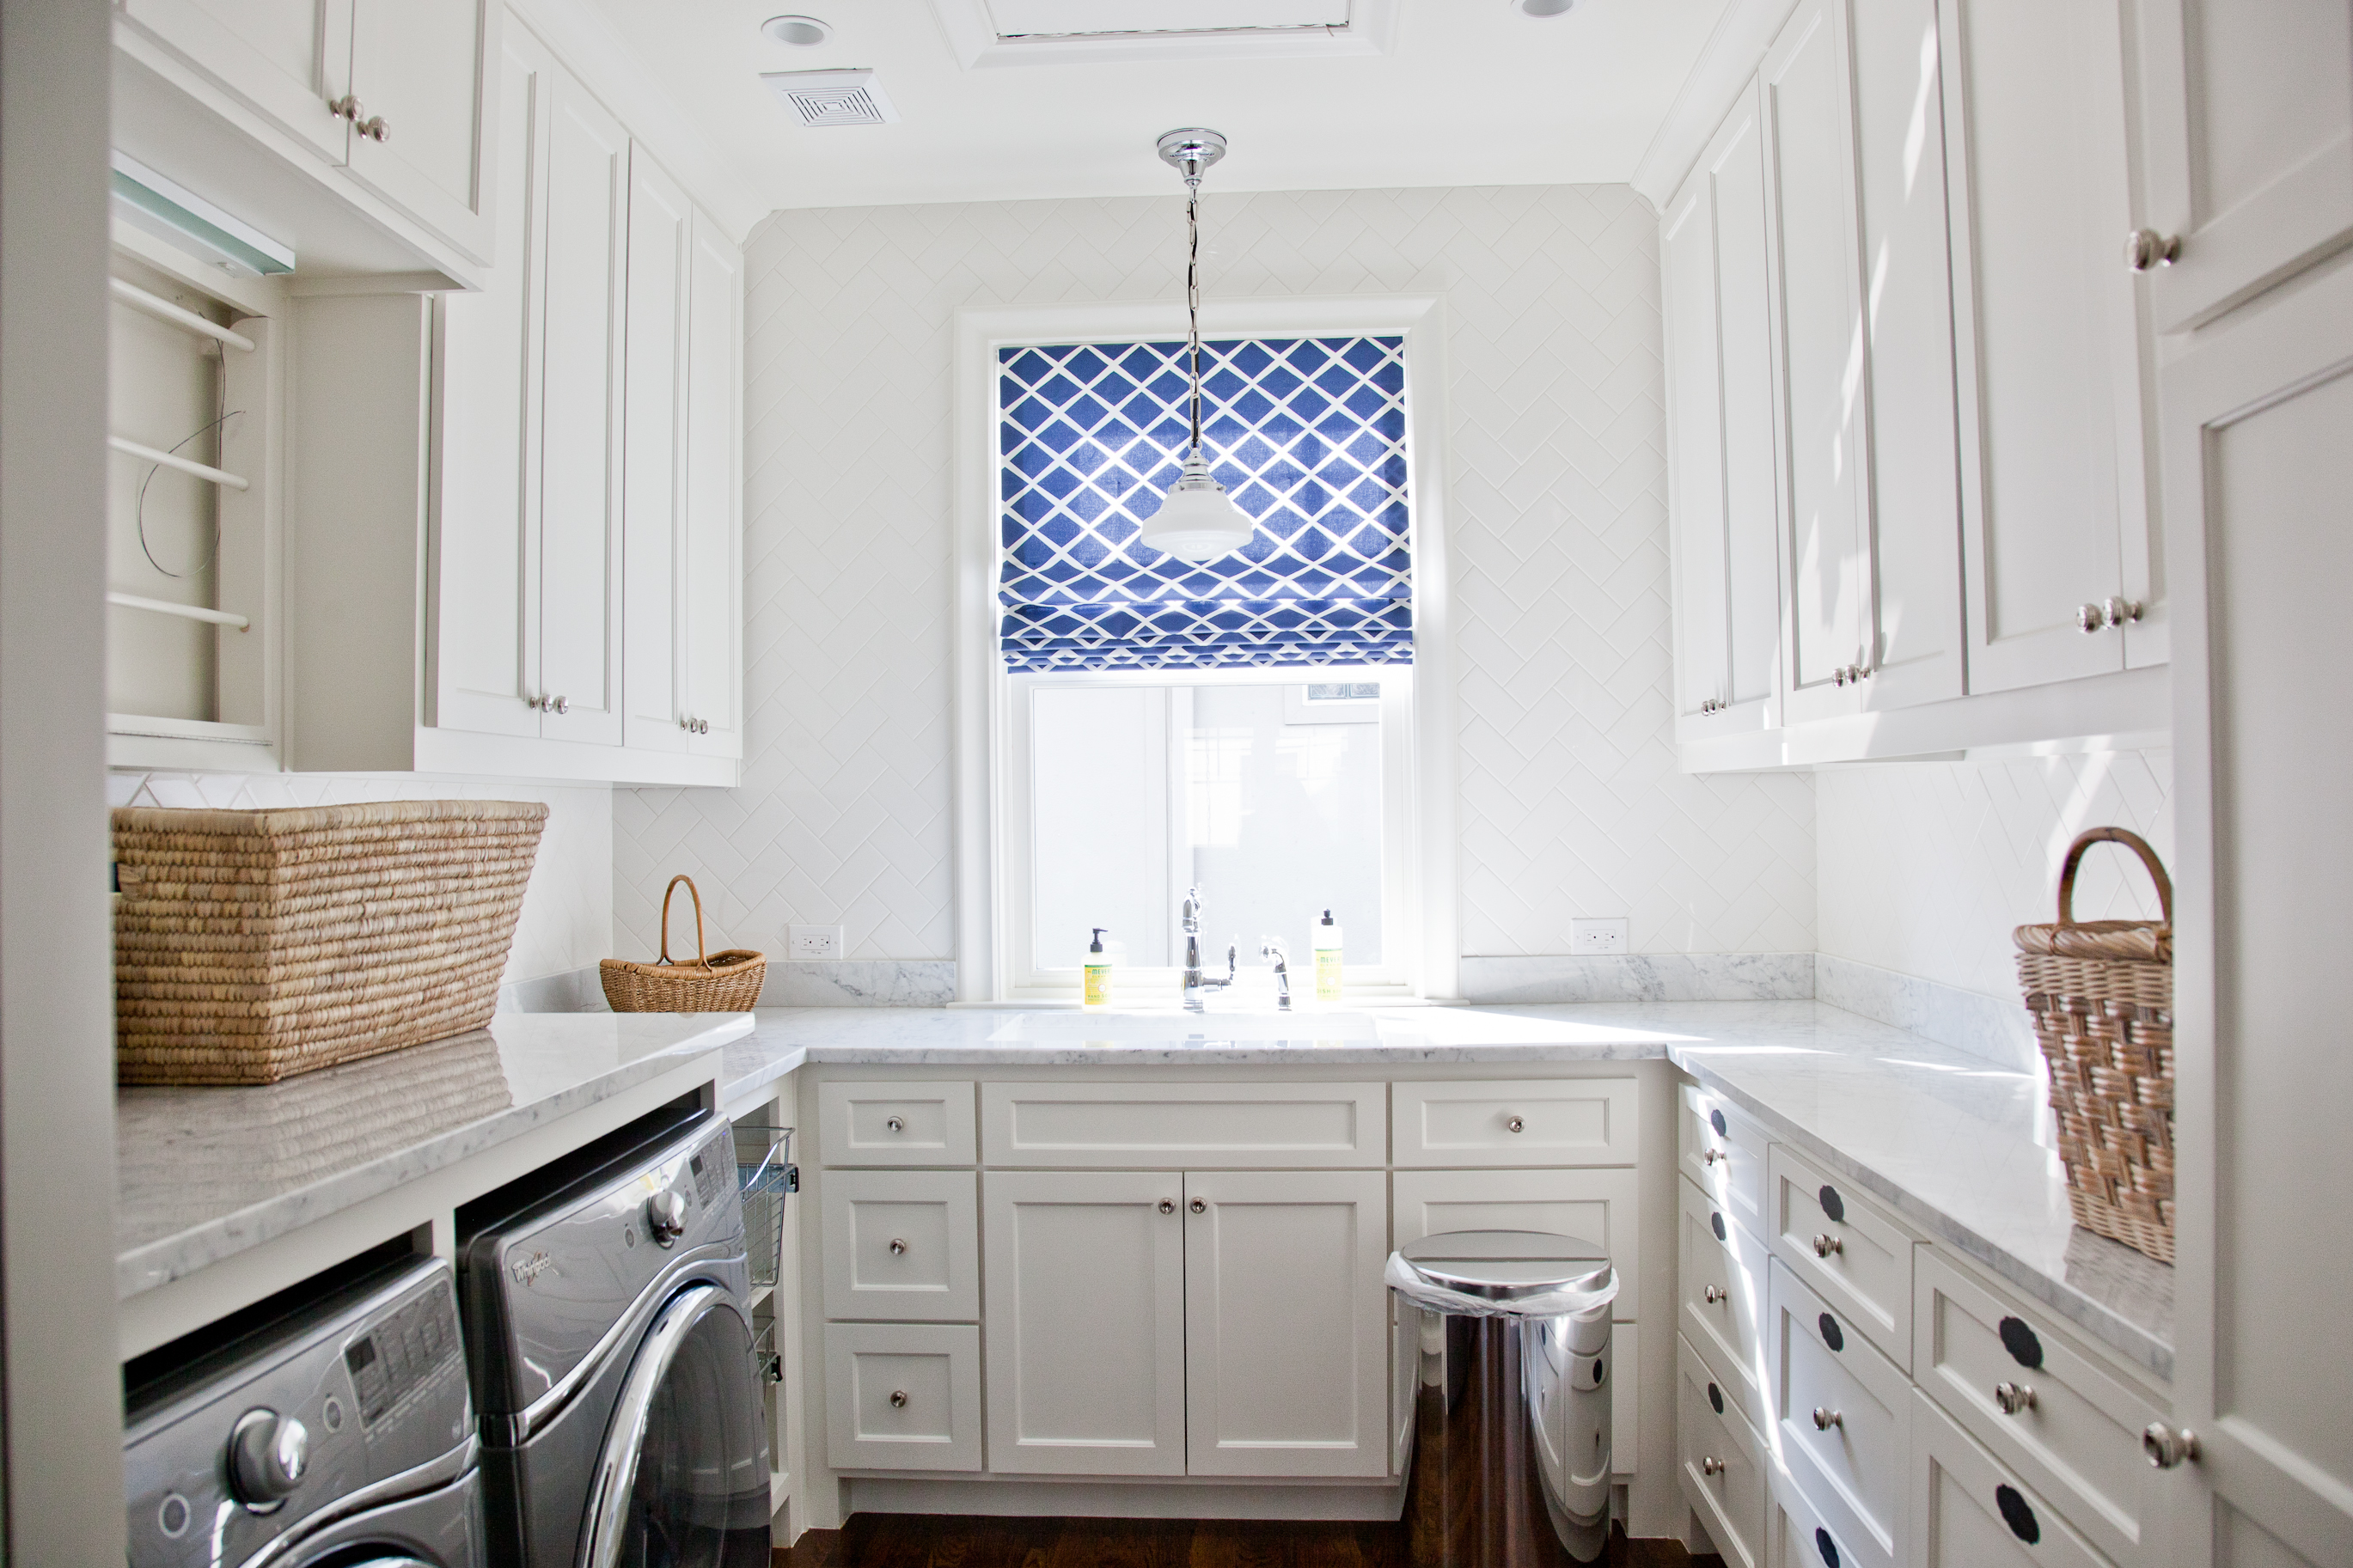 kitchen countertop wooden carrara countertops marble set with white ideas backsplash cabinet